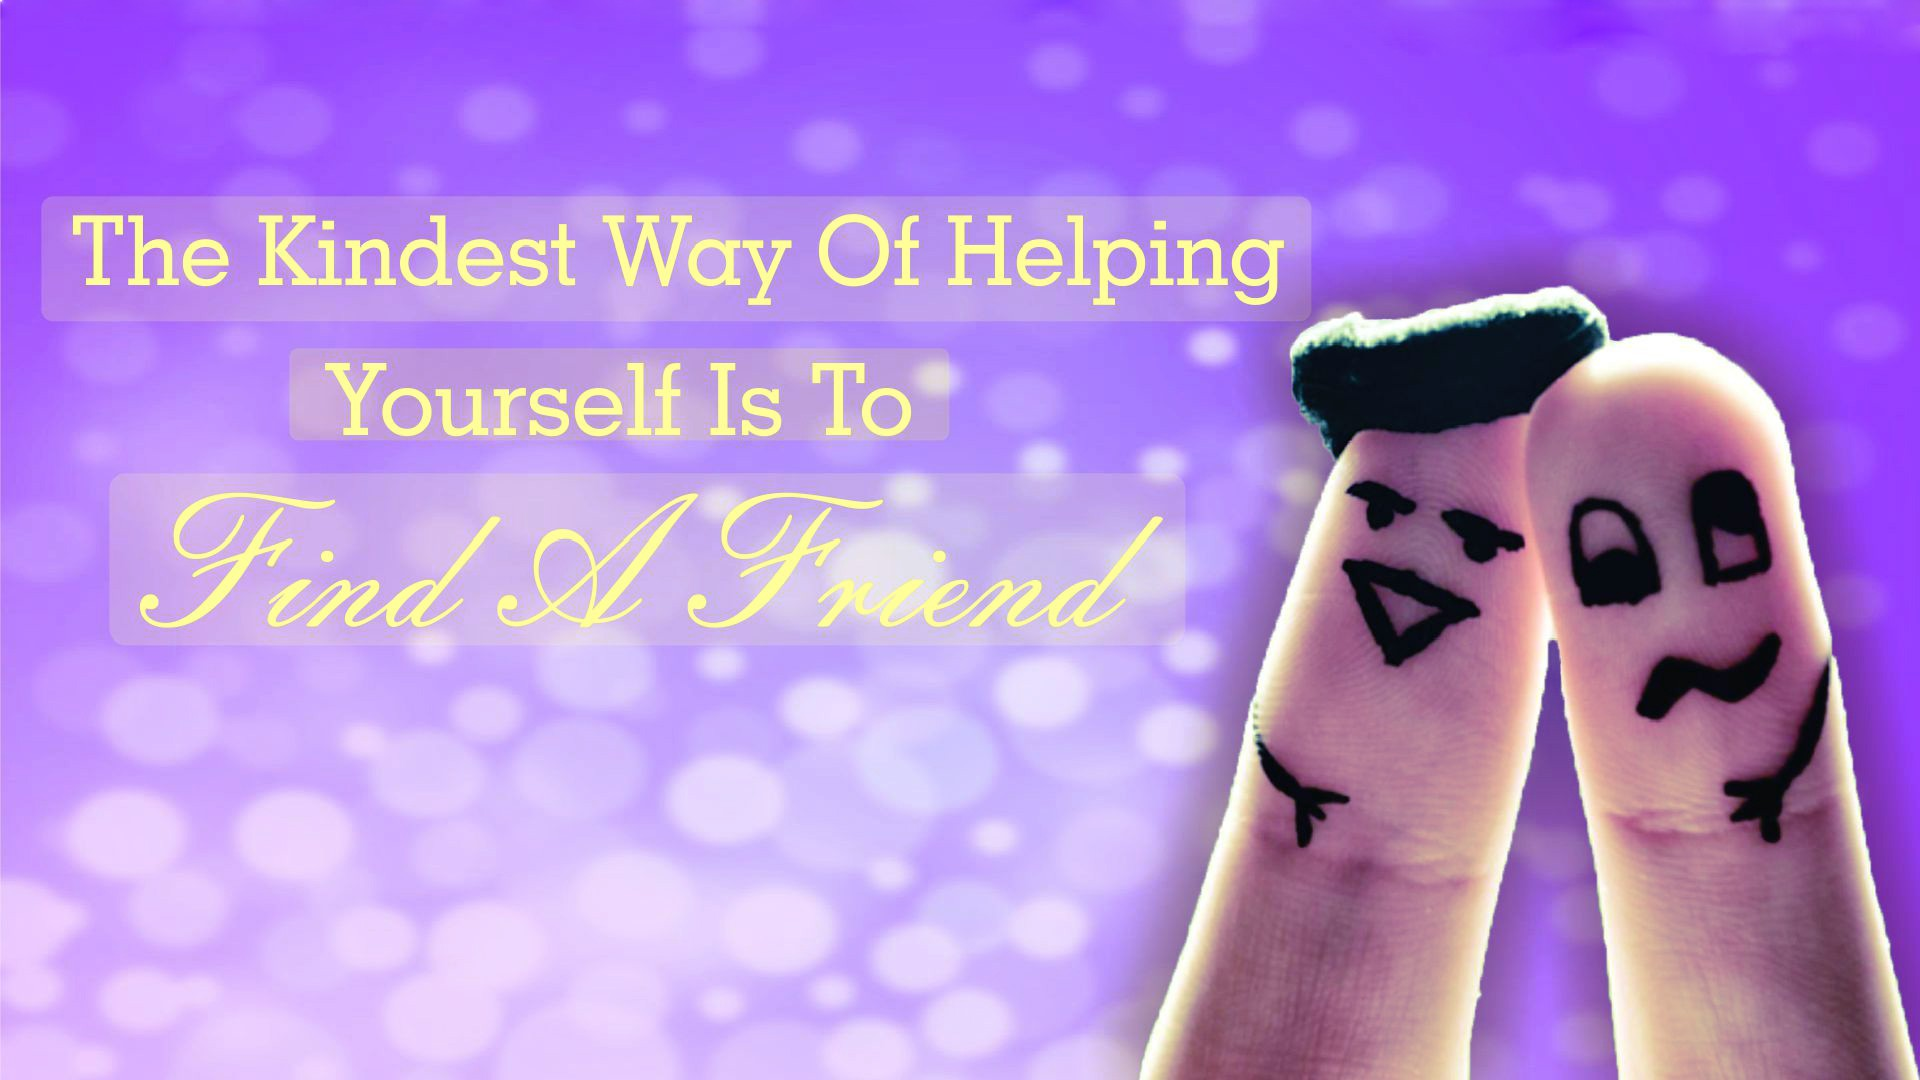 Download Friendship Day Image Wallpaper